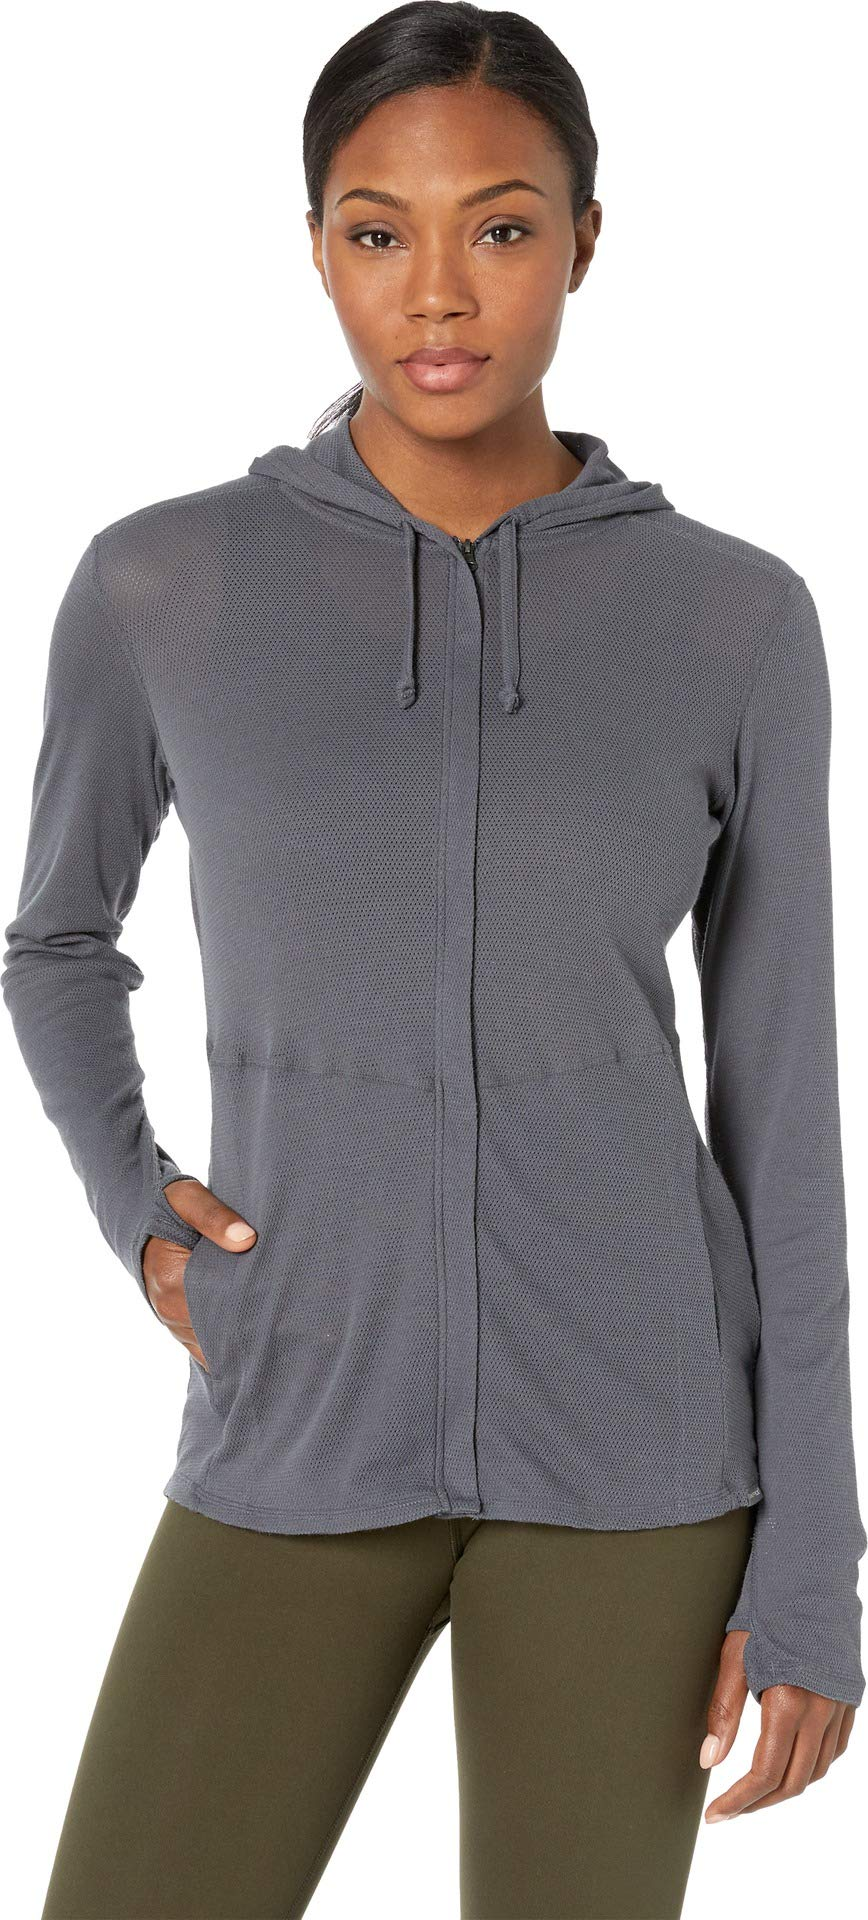 ExOfficio Women's BugsAway Lm Full Zip Hoody, Carbon, X-Large by ExOfficio